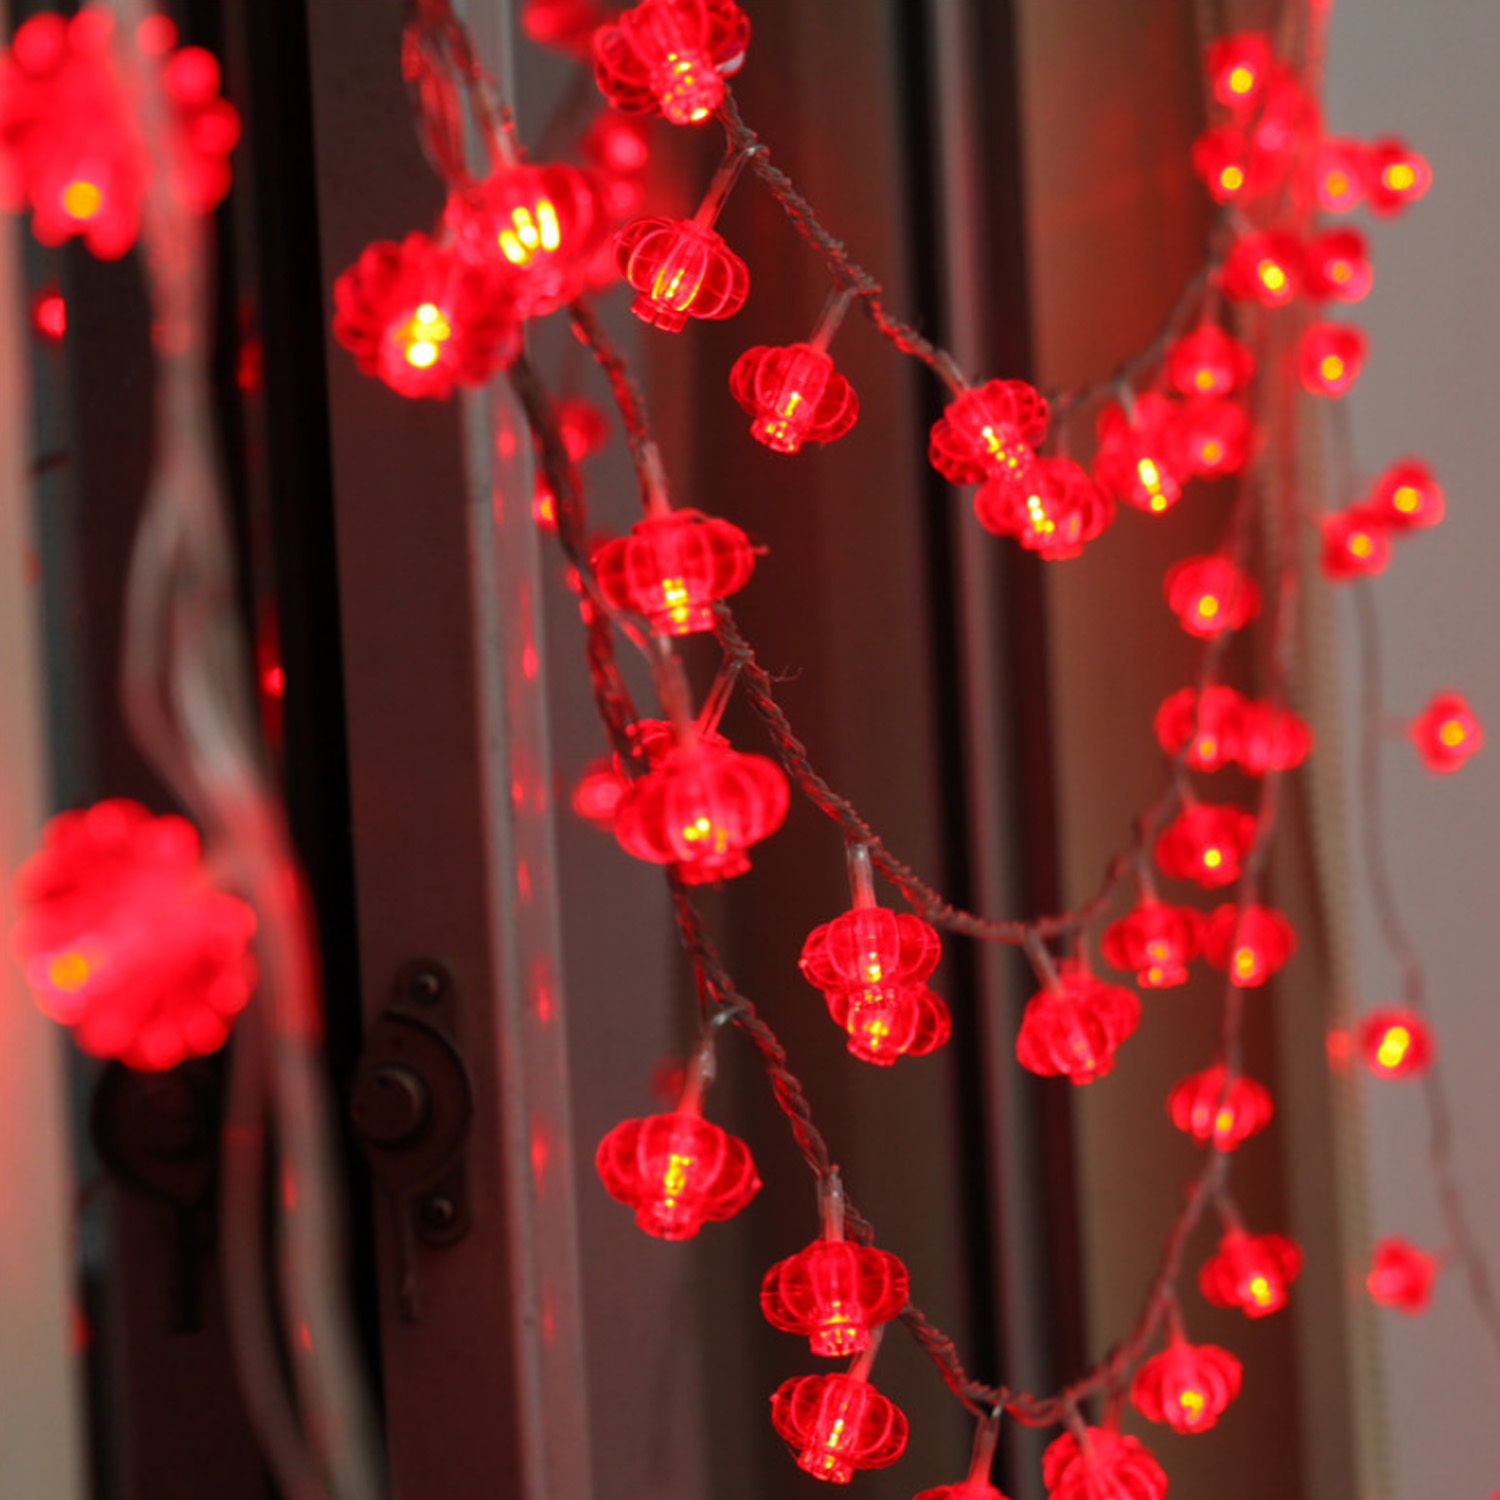 Behogar 118inch 30-LED Battery Operated Lantern String Lights For Chinese New Year Spring Festival Home Party Decoration Props